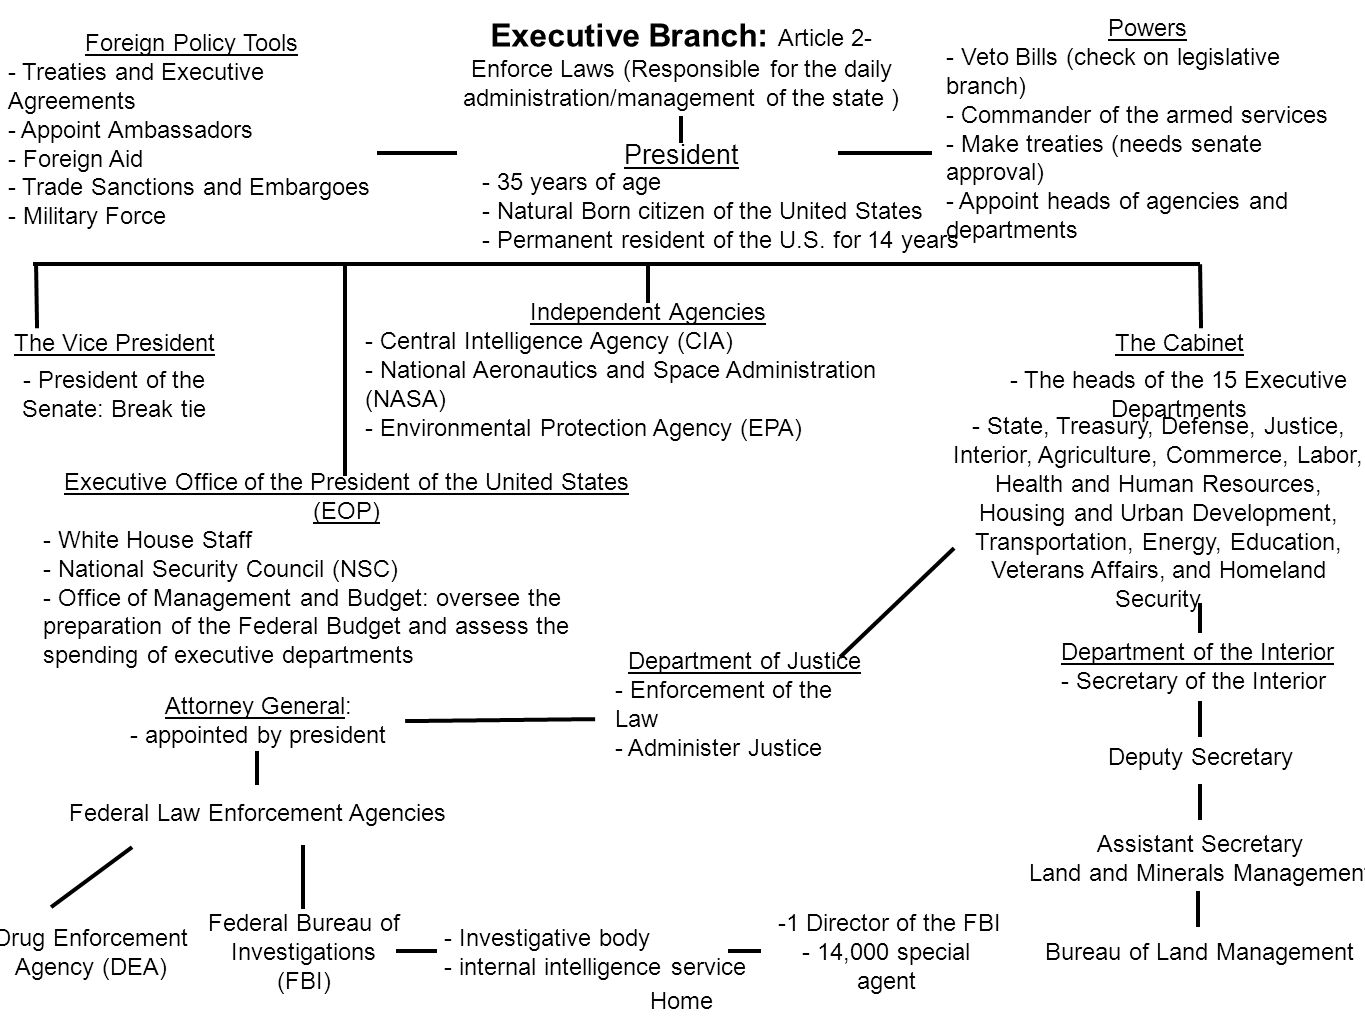 Executive Branch: Article 2- Enforce Laws (Responsible for the daily administration/management of the state )